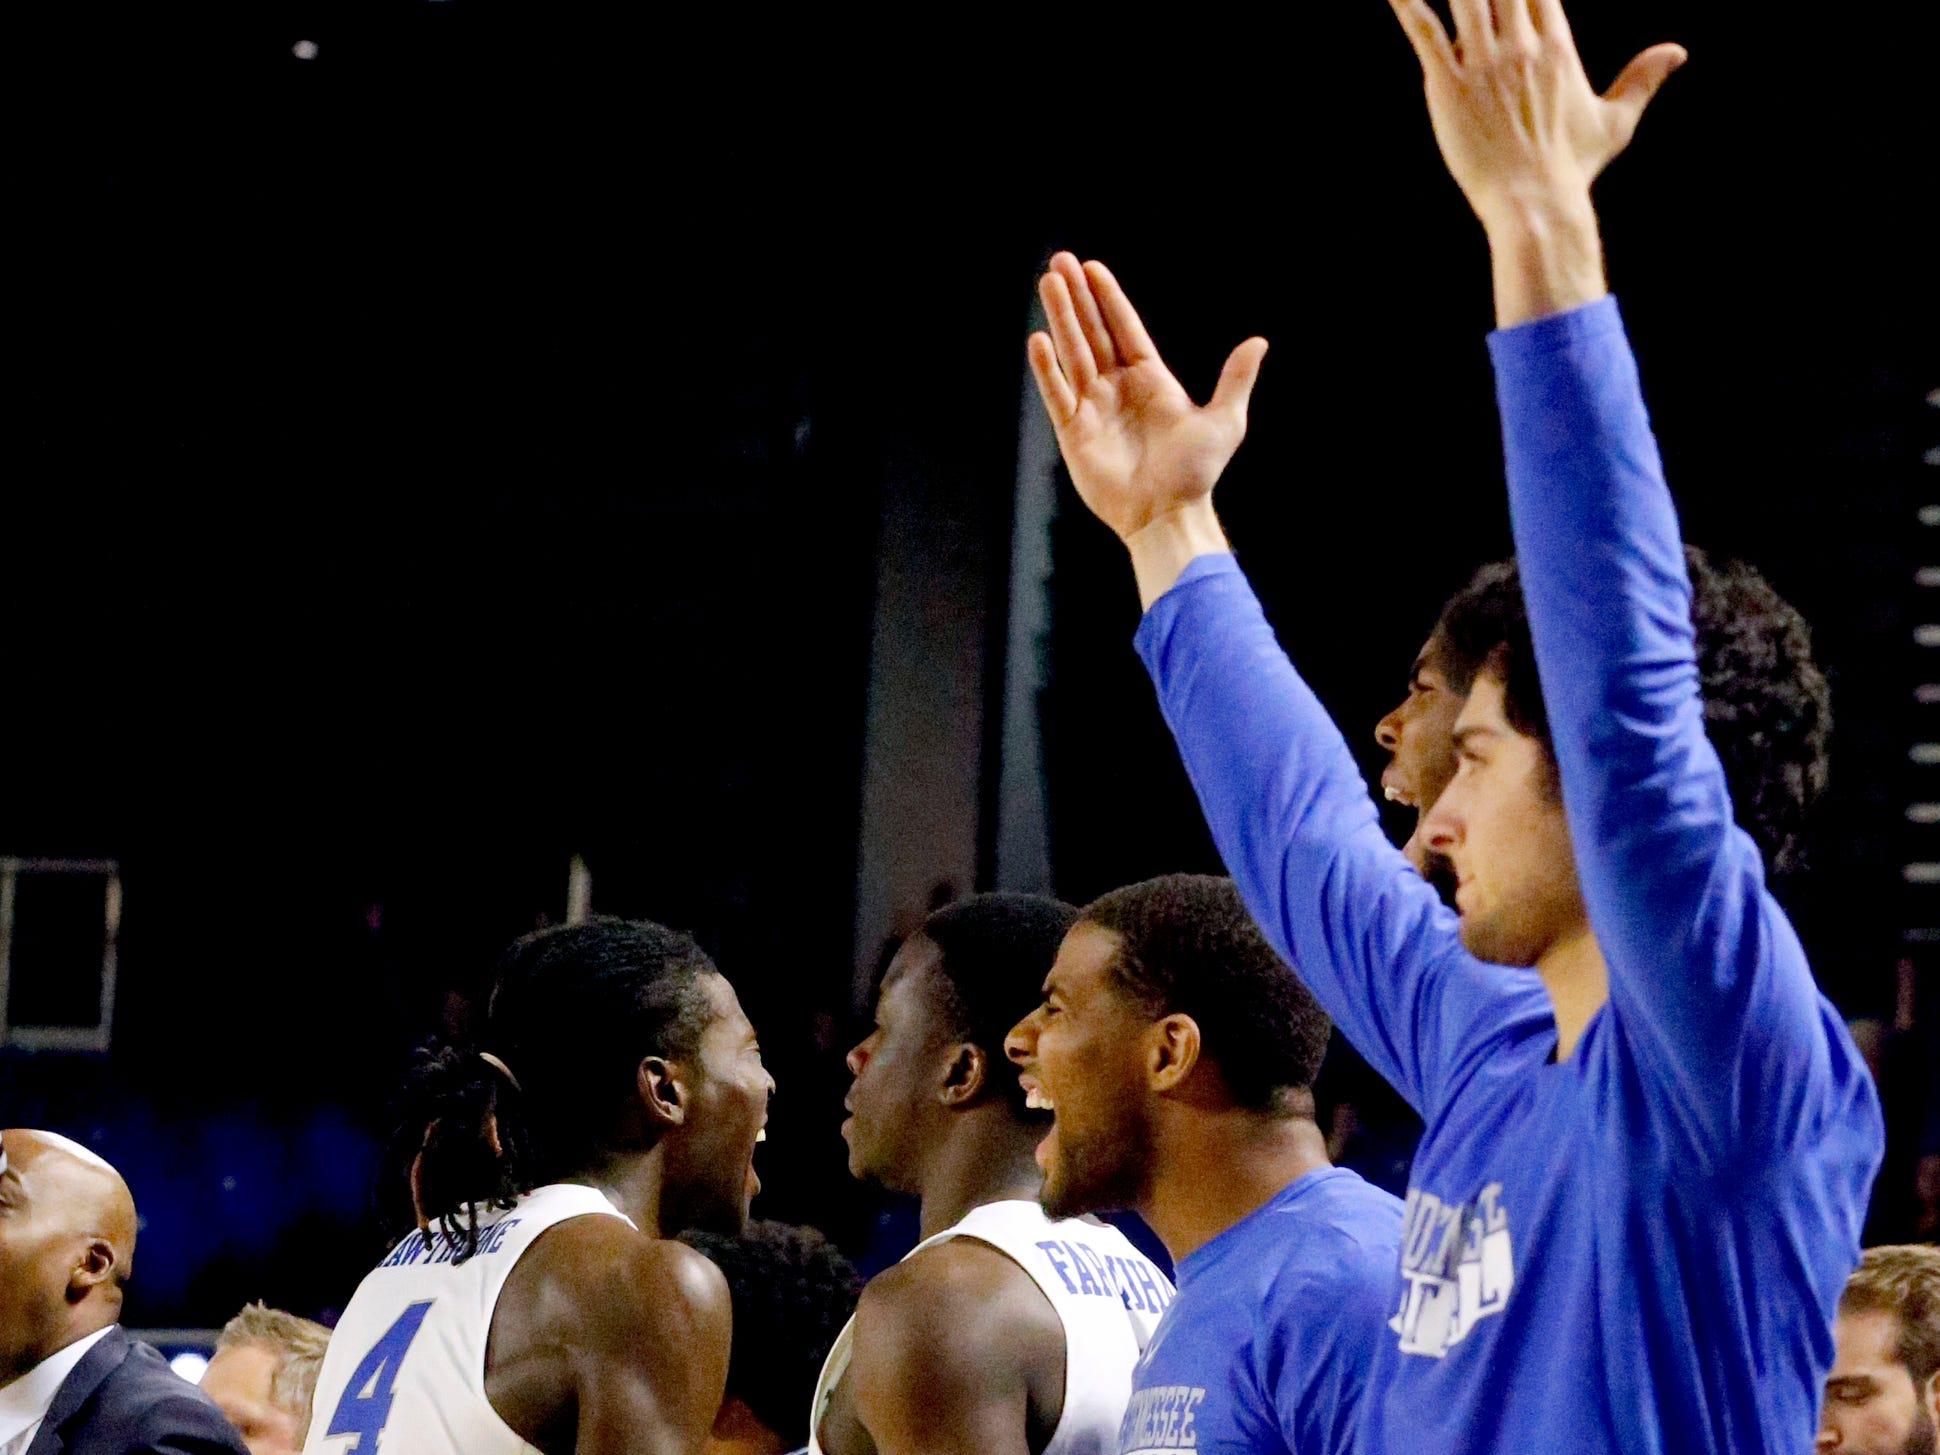 MTSU's bench celebrates after  MTSU guard Donovan Sims (3) makes a three point basket against UAB late in the second half on Wednesday, Jan. 30, 2019.